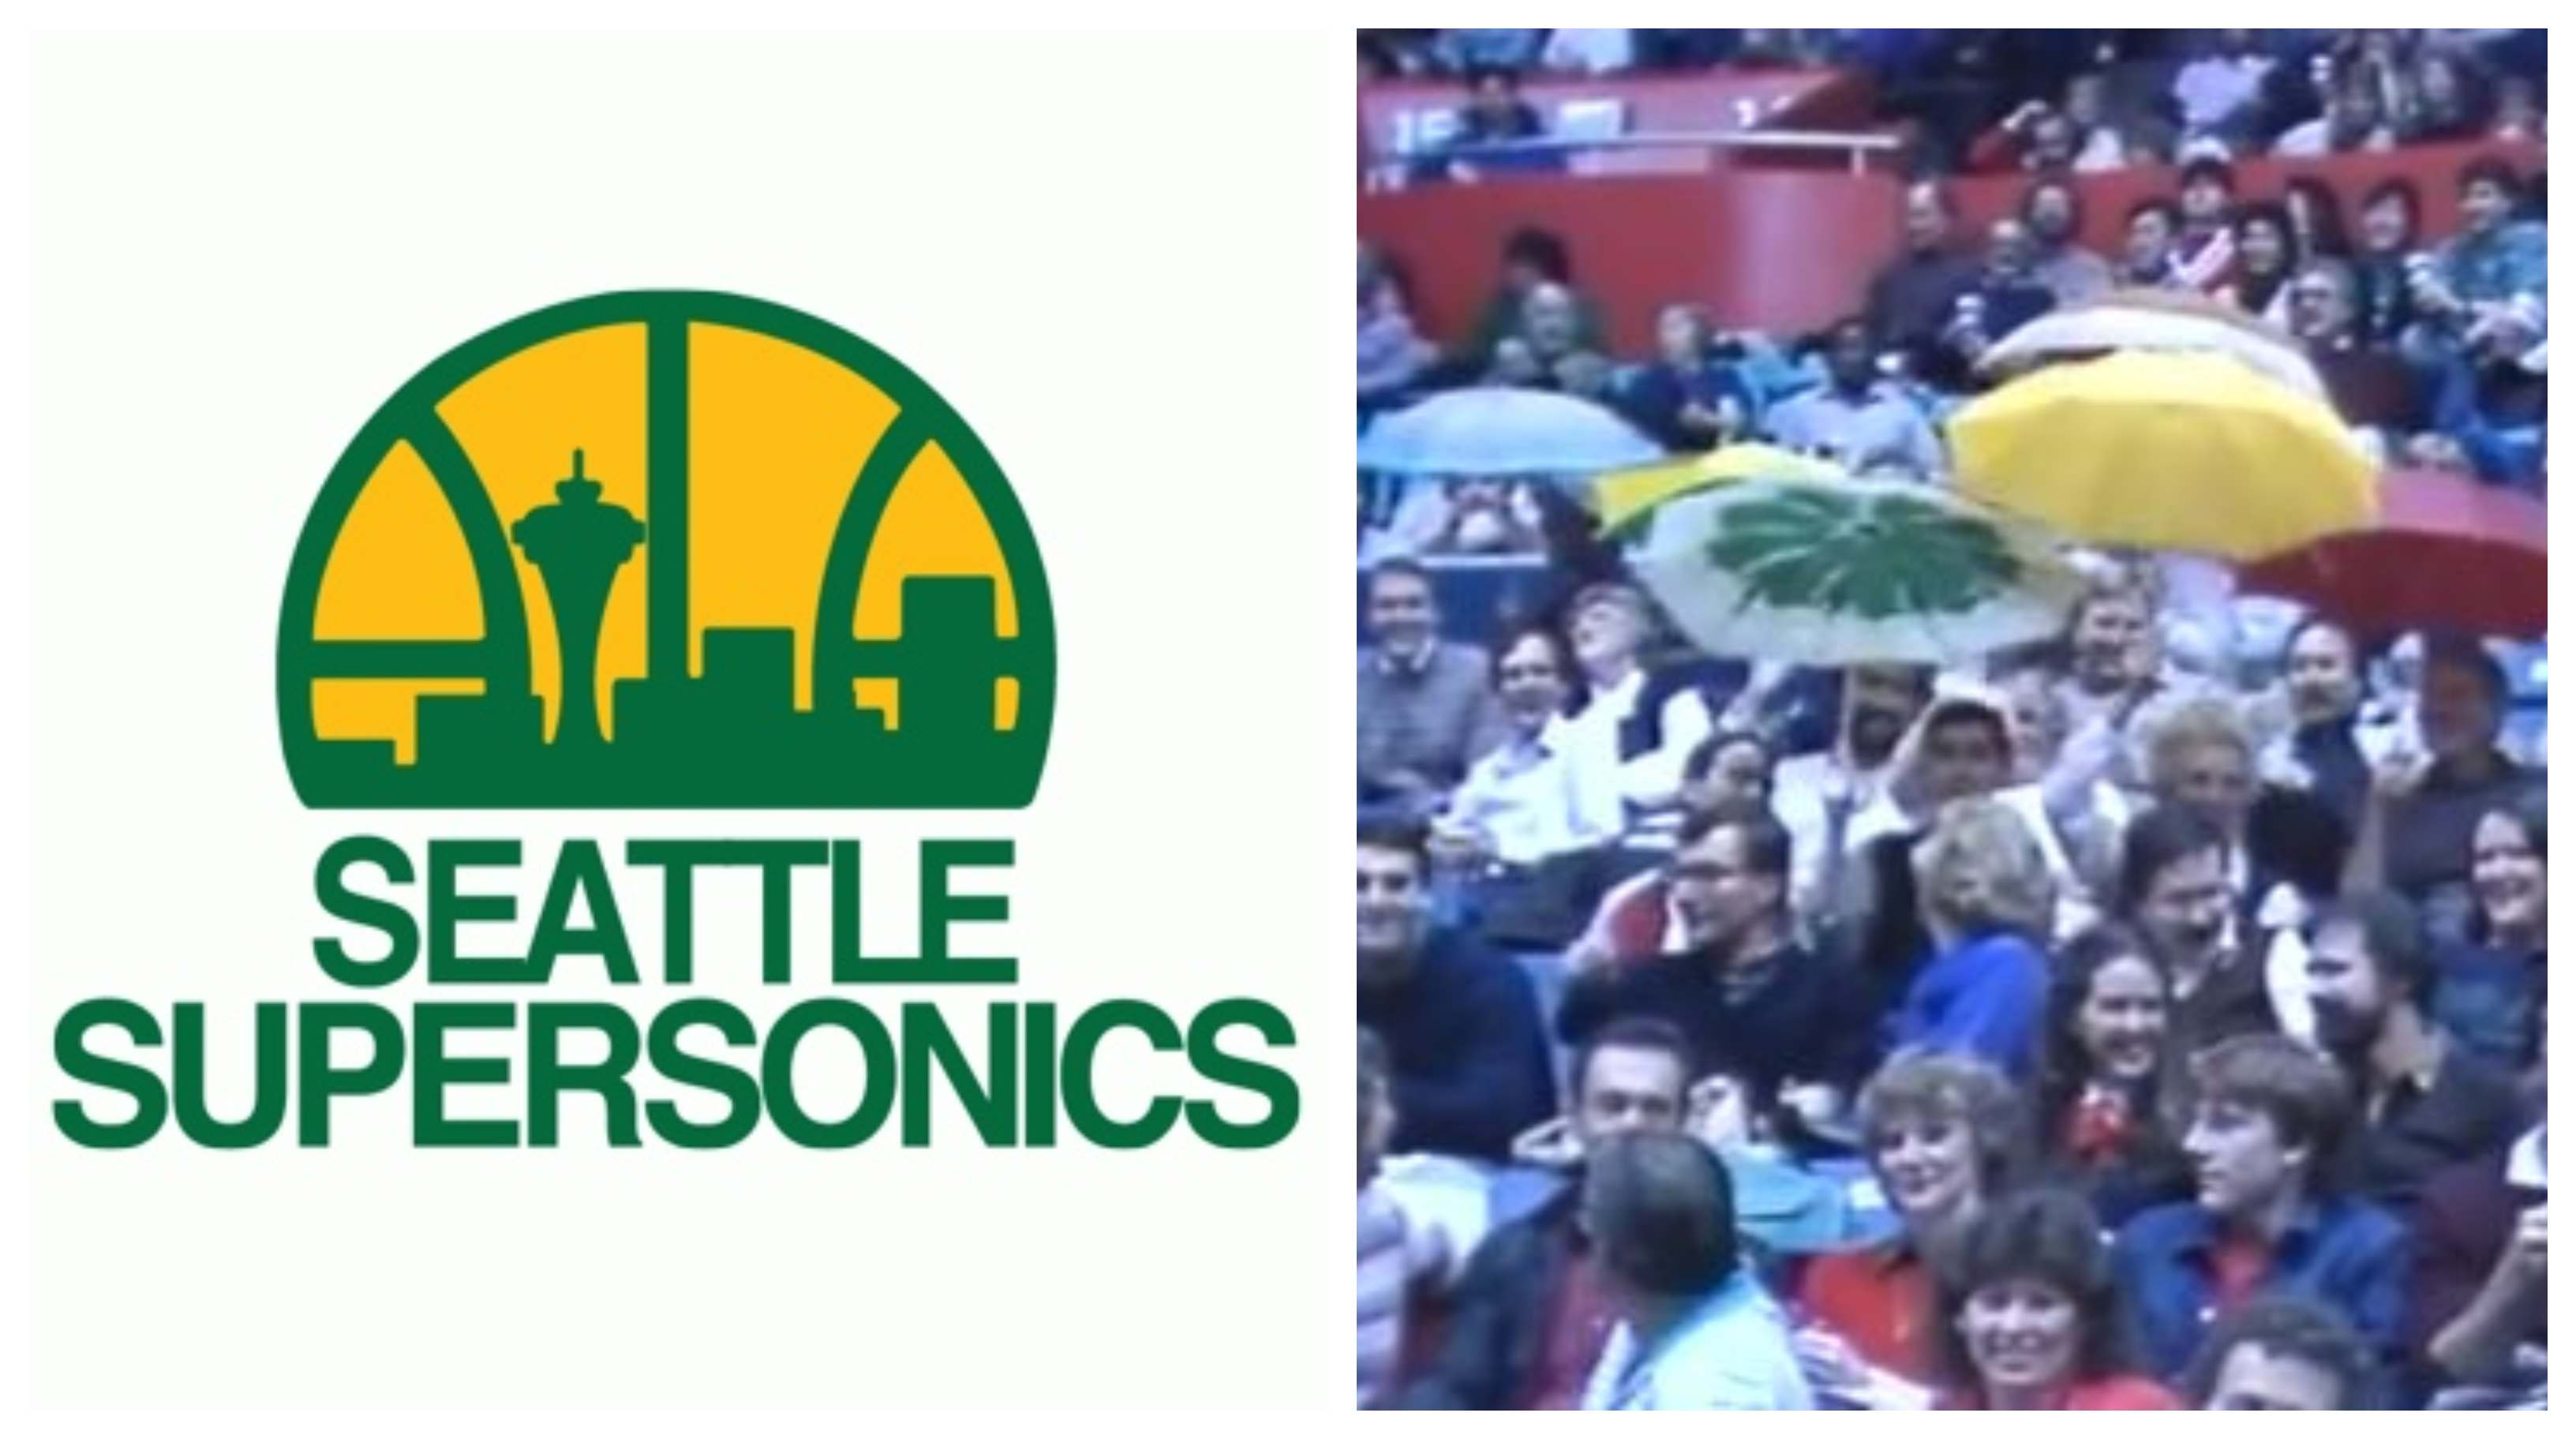 Jan-5-1986: Seattle Supersonics Have a Rain Delay